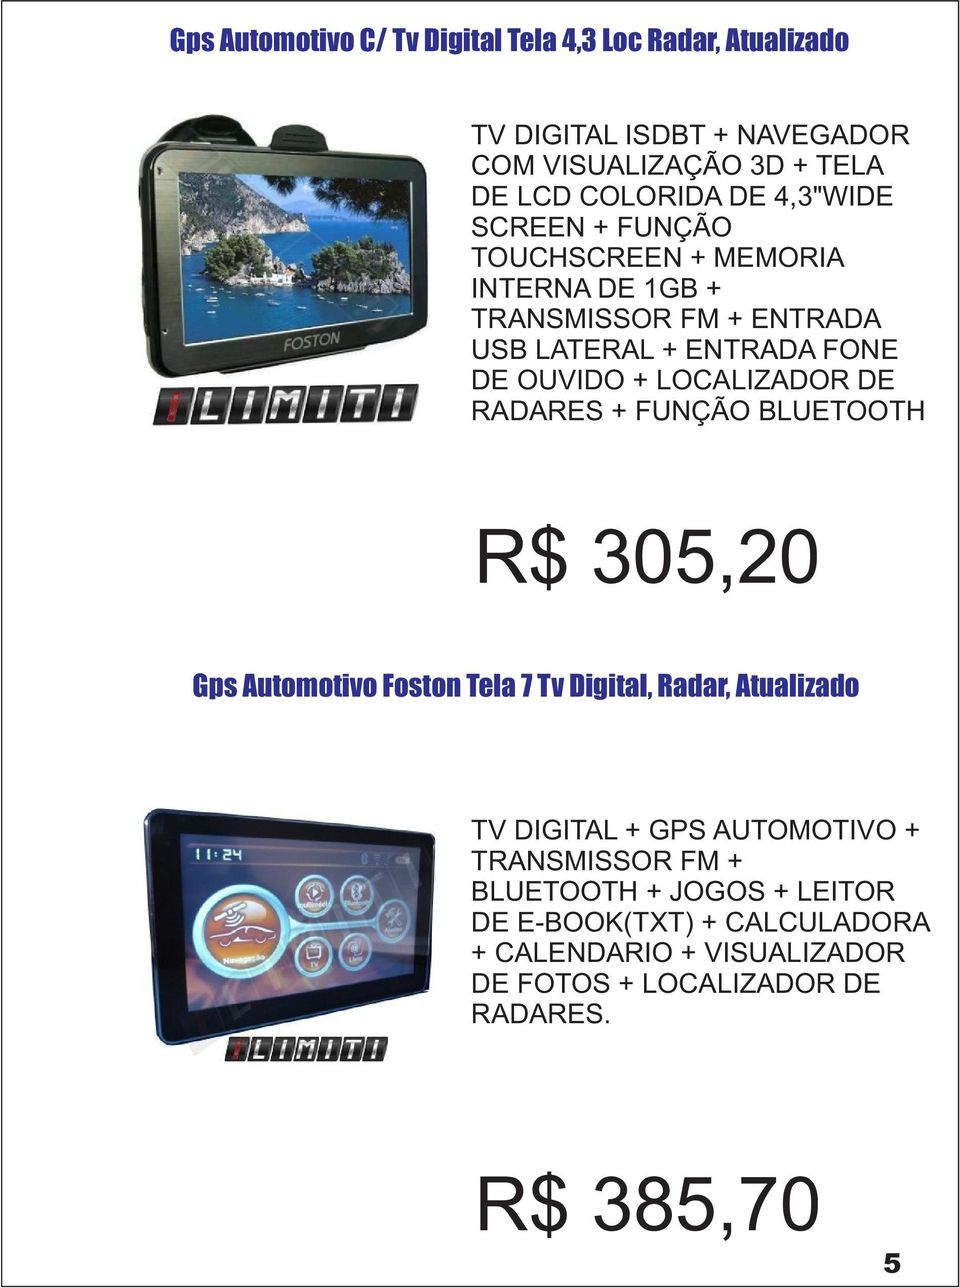 LOCALIZADOR DE RADARES + FUNÇÃO BLUETOOTH R$ 305,20 Gps Automotivo Foston Tela 7 Tv Digital, Radar, Atualizado TV DIGITAL + GPS